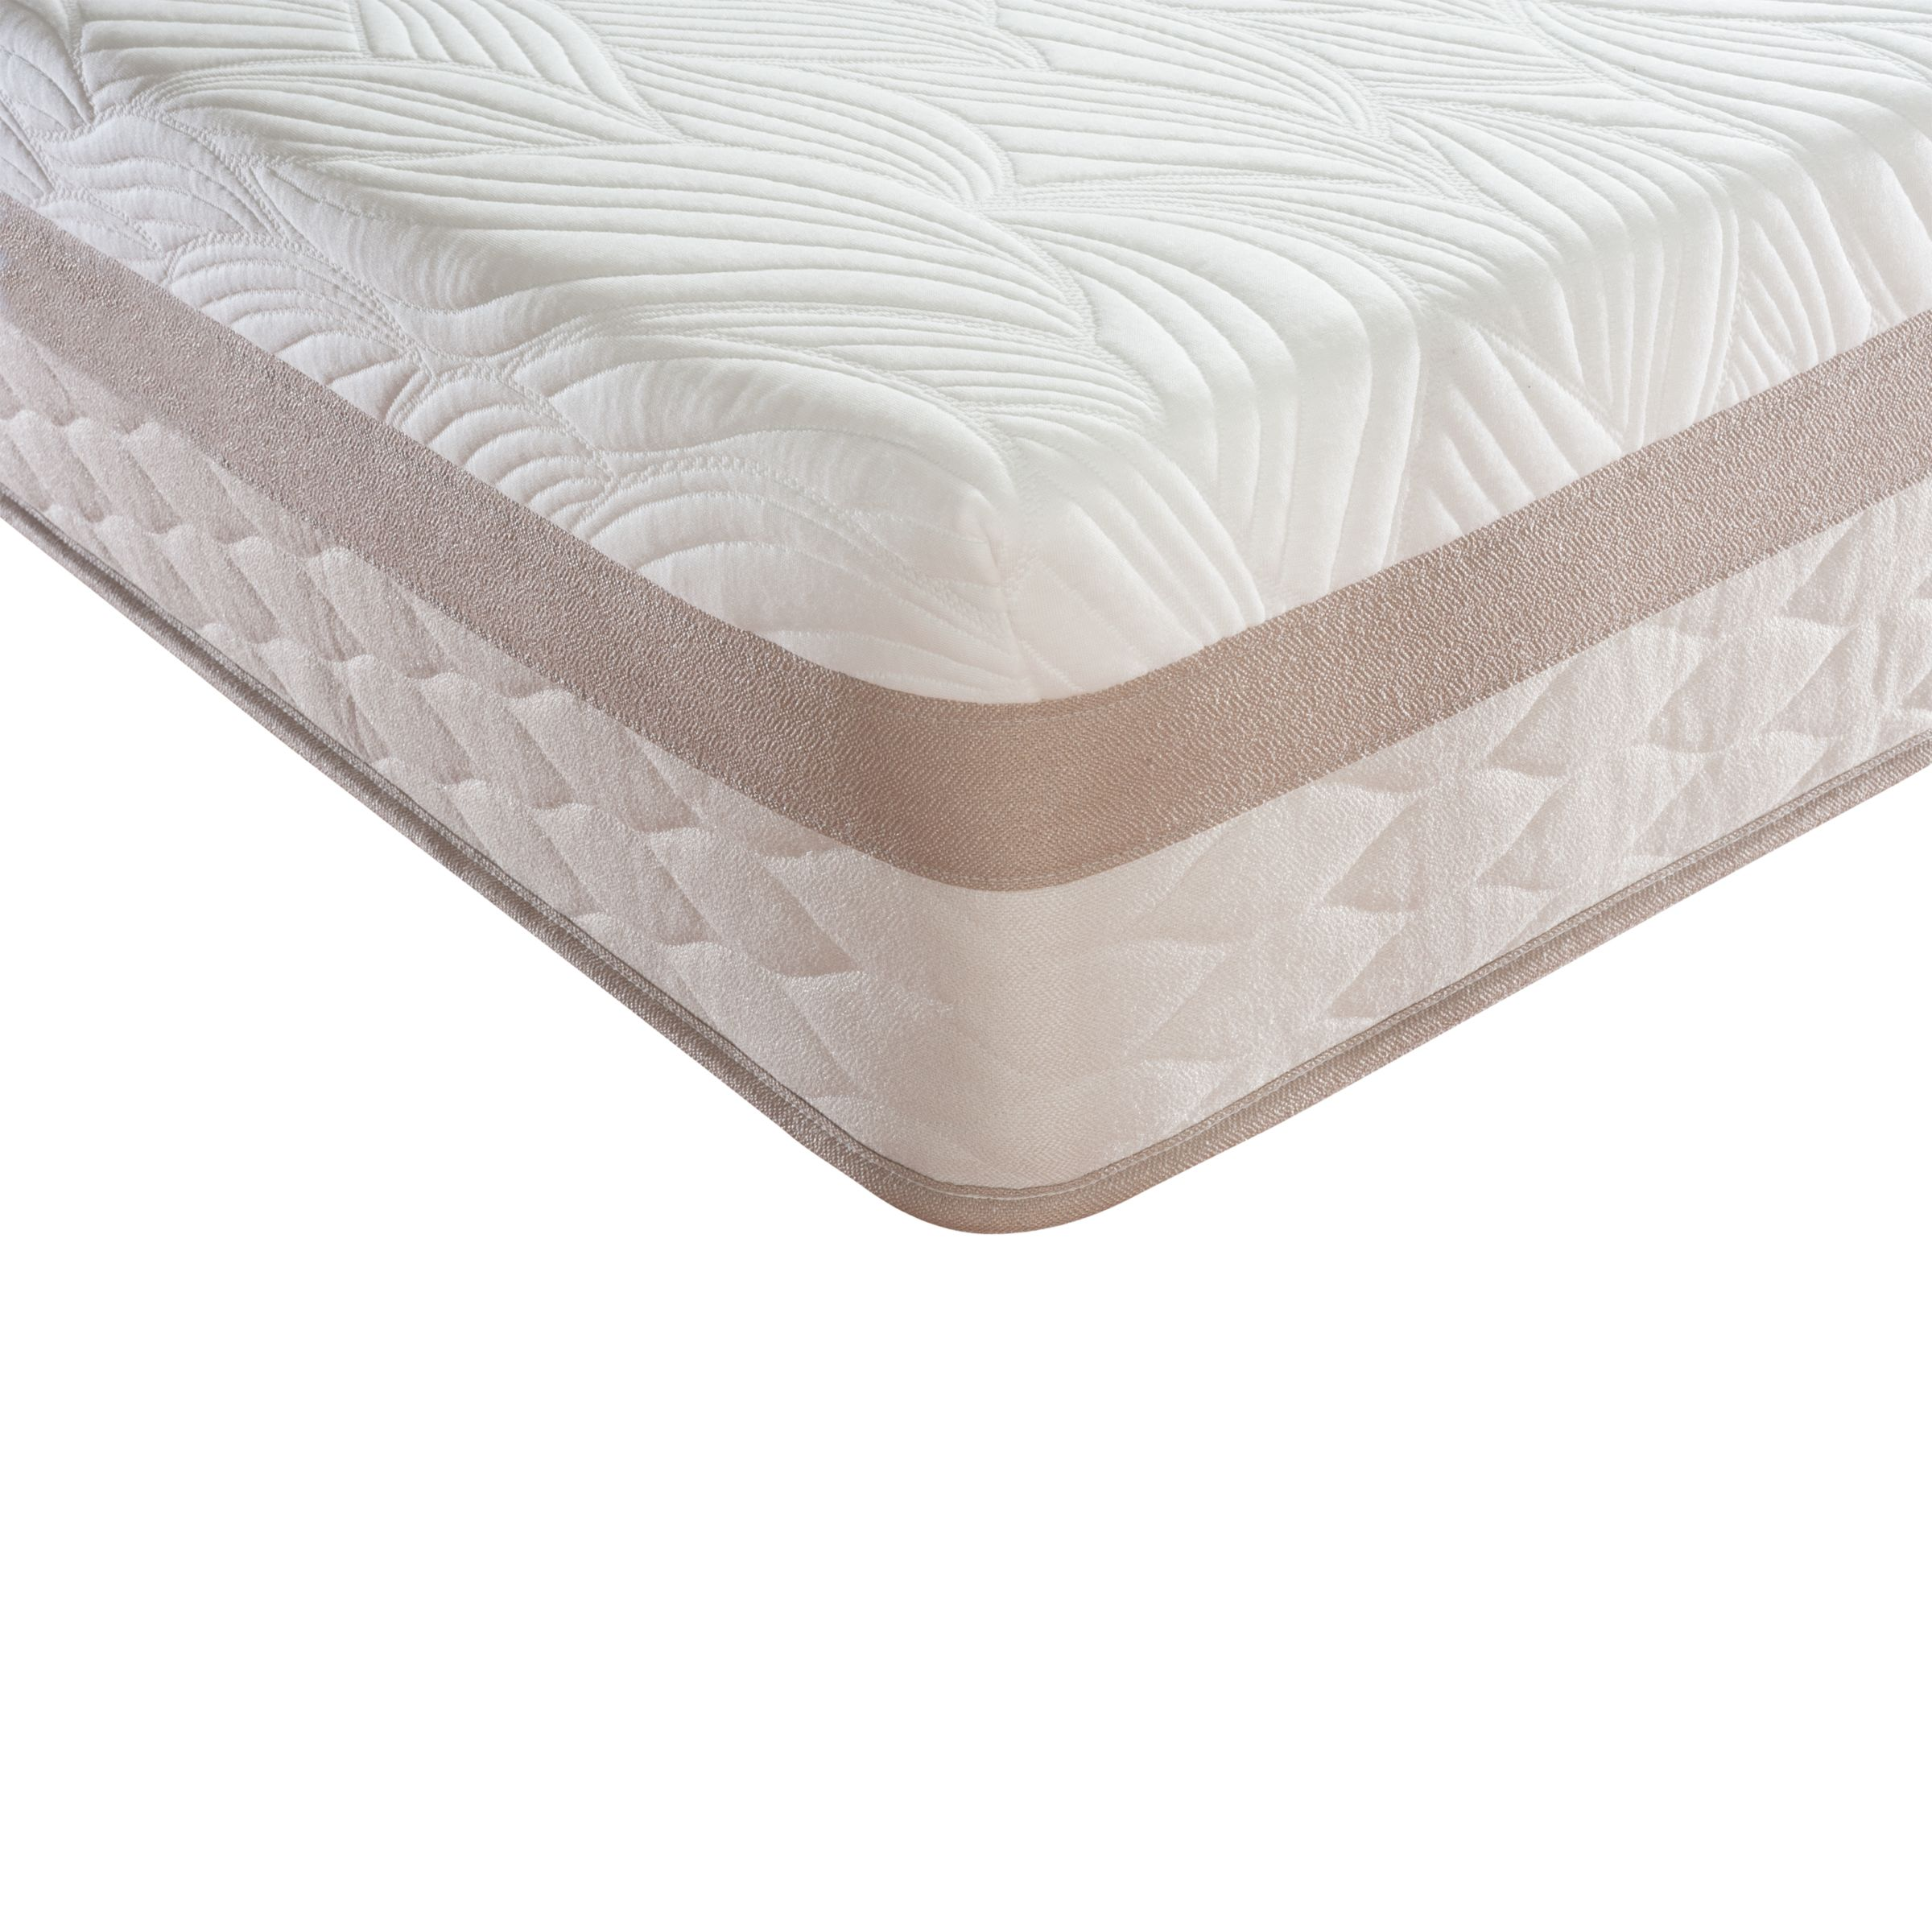 Sealy Optimum Luxury Mattress, Kingsize